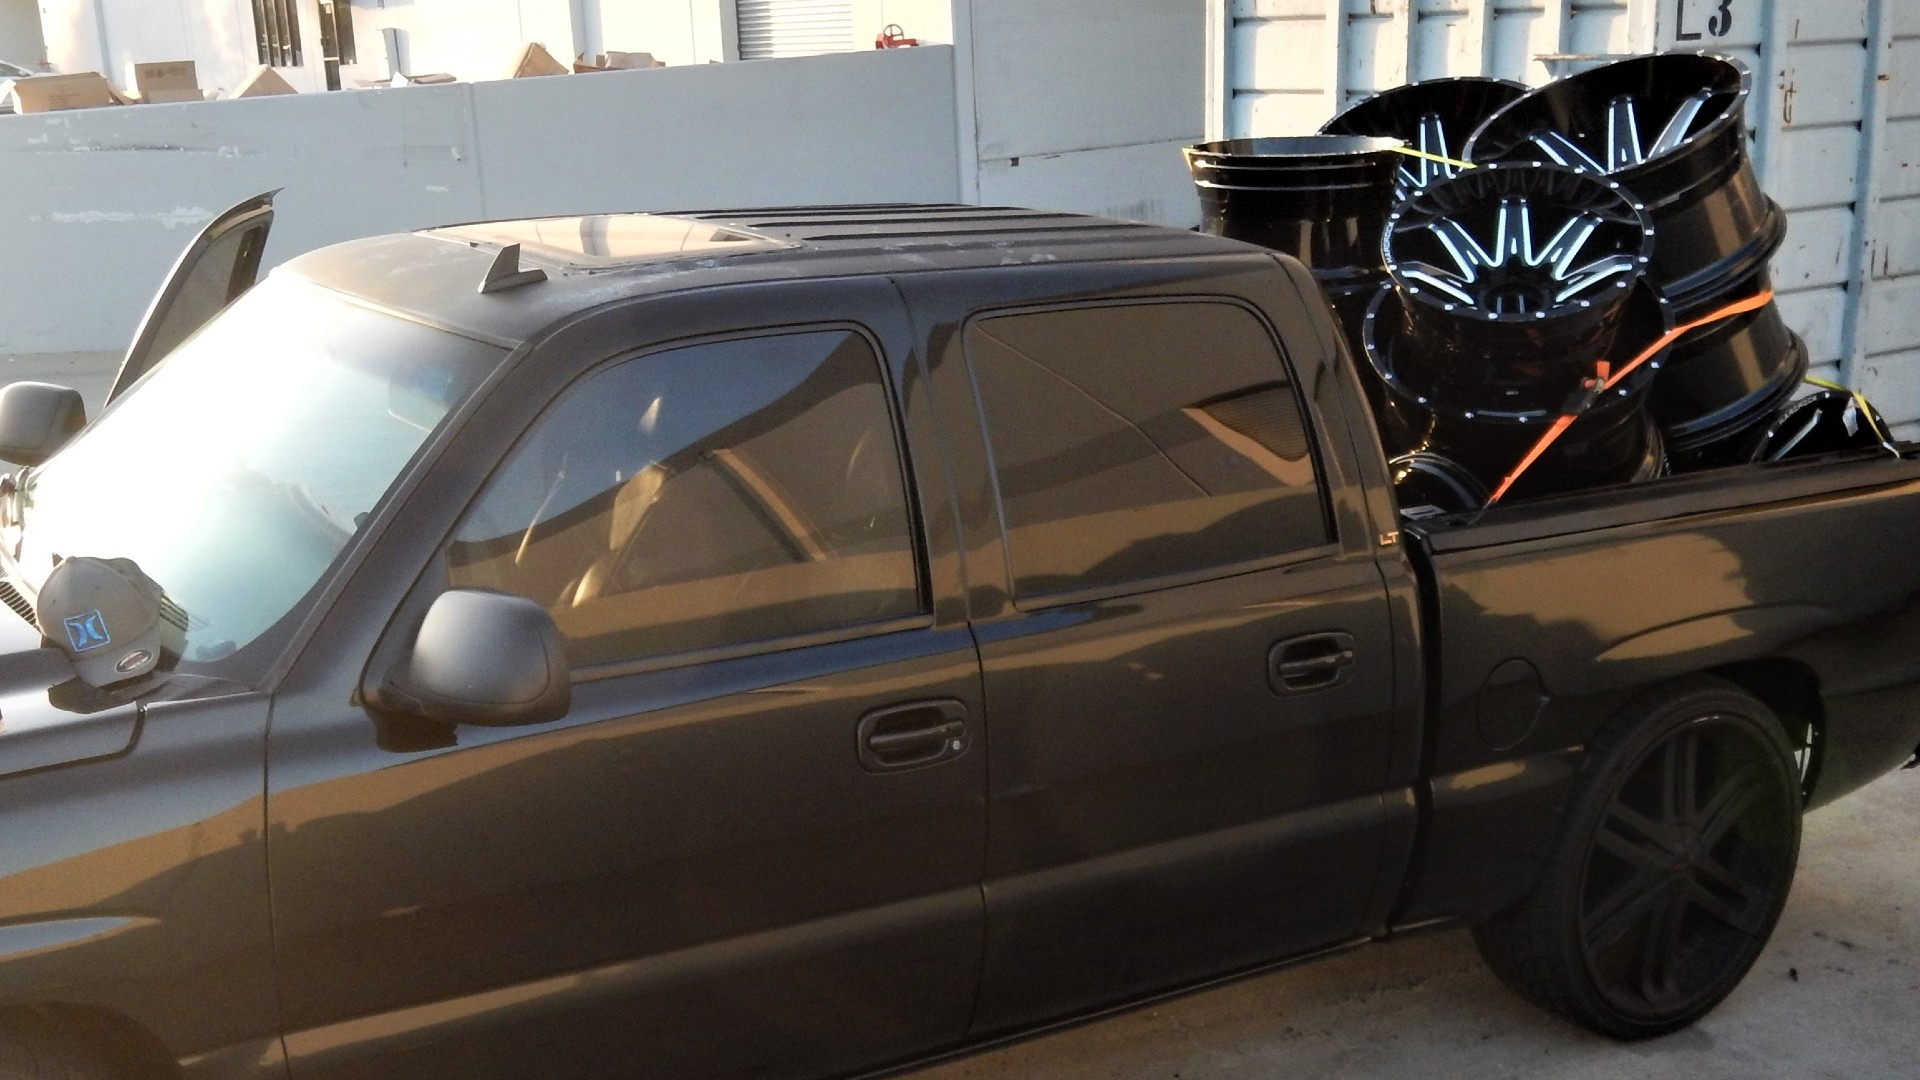 Irwindale police released this image of the truck packed with alleged stolen rims.